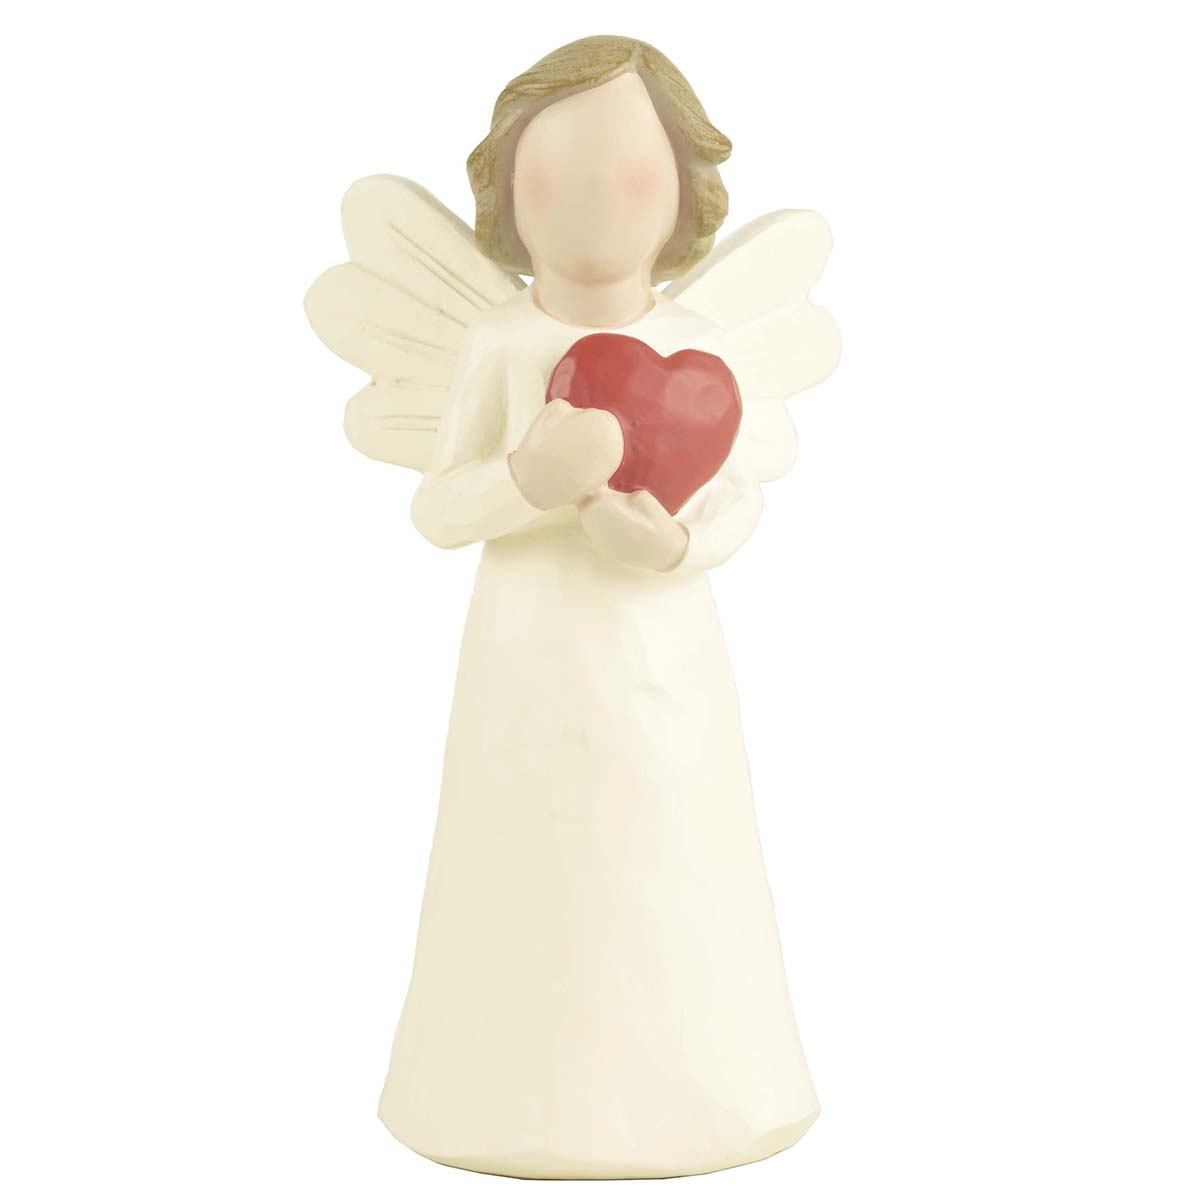 Ennas angel figurines lovely for ornaments-1